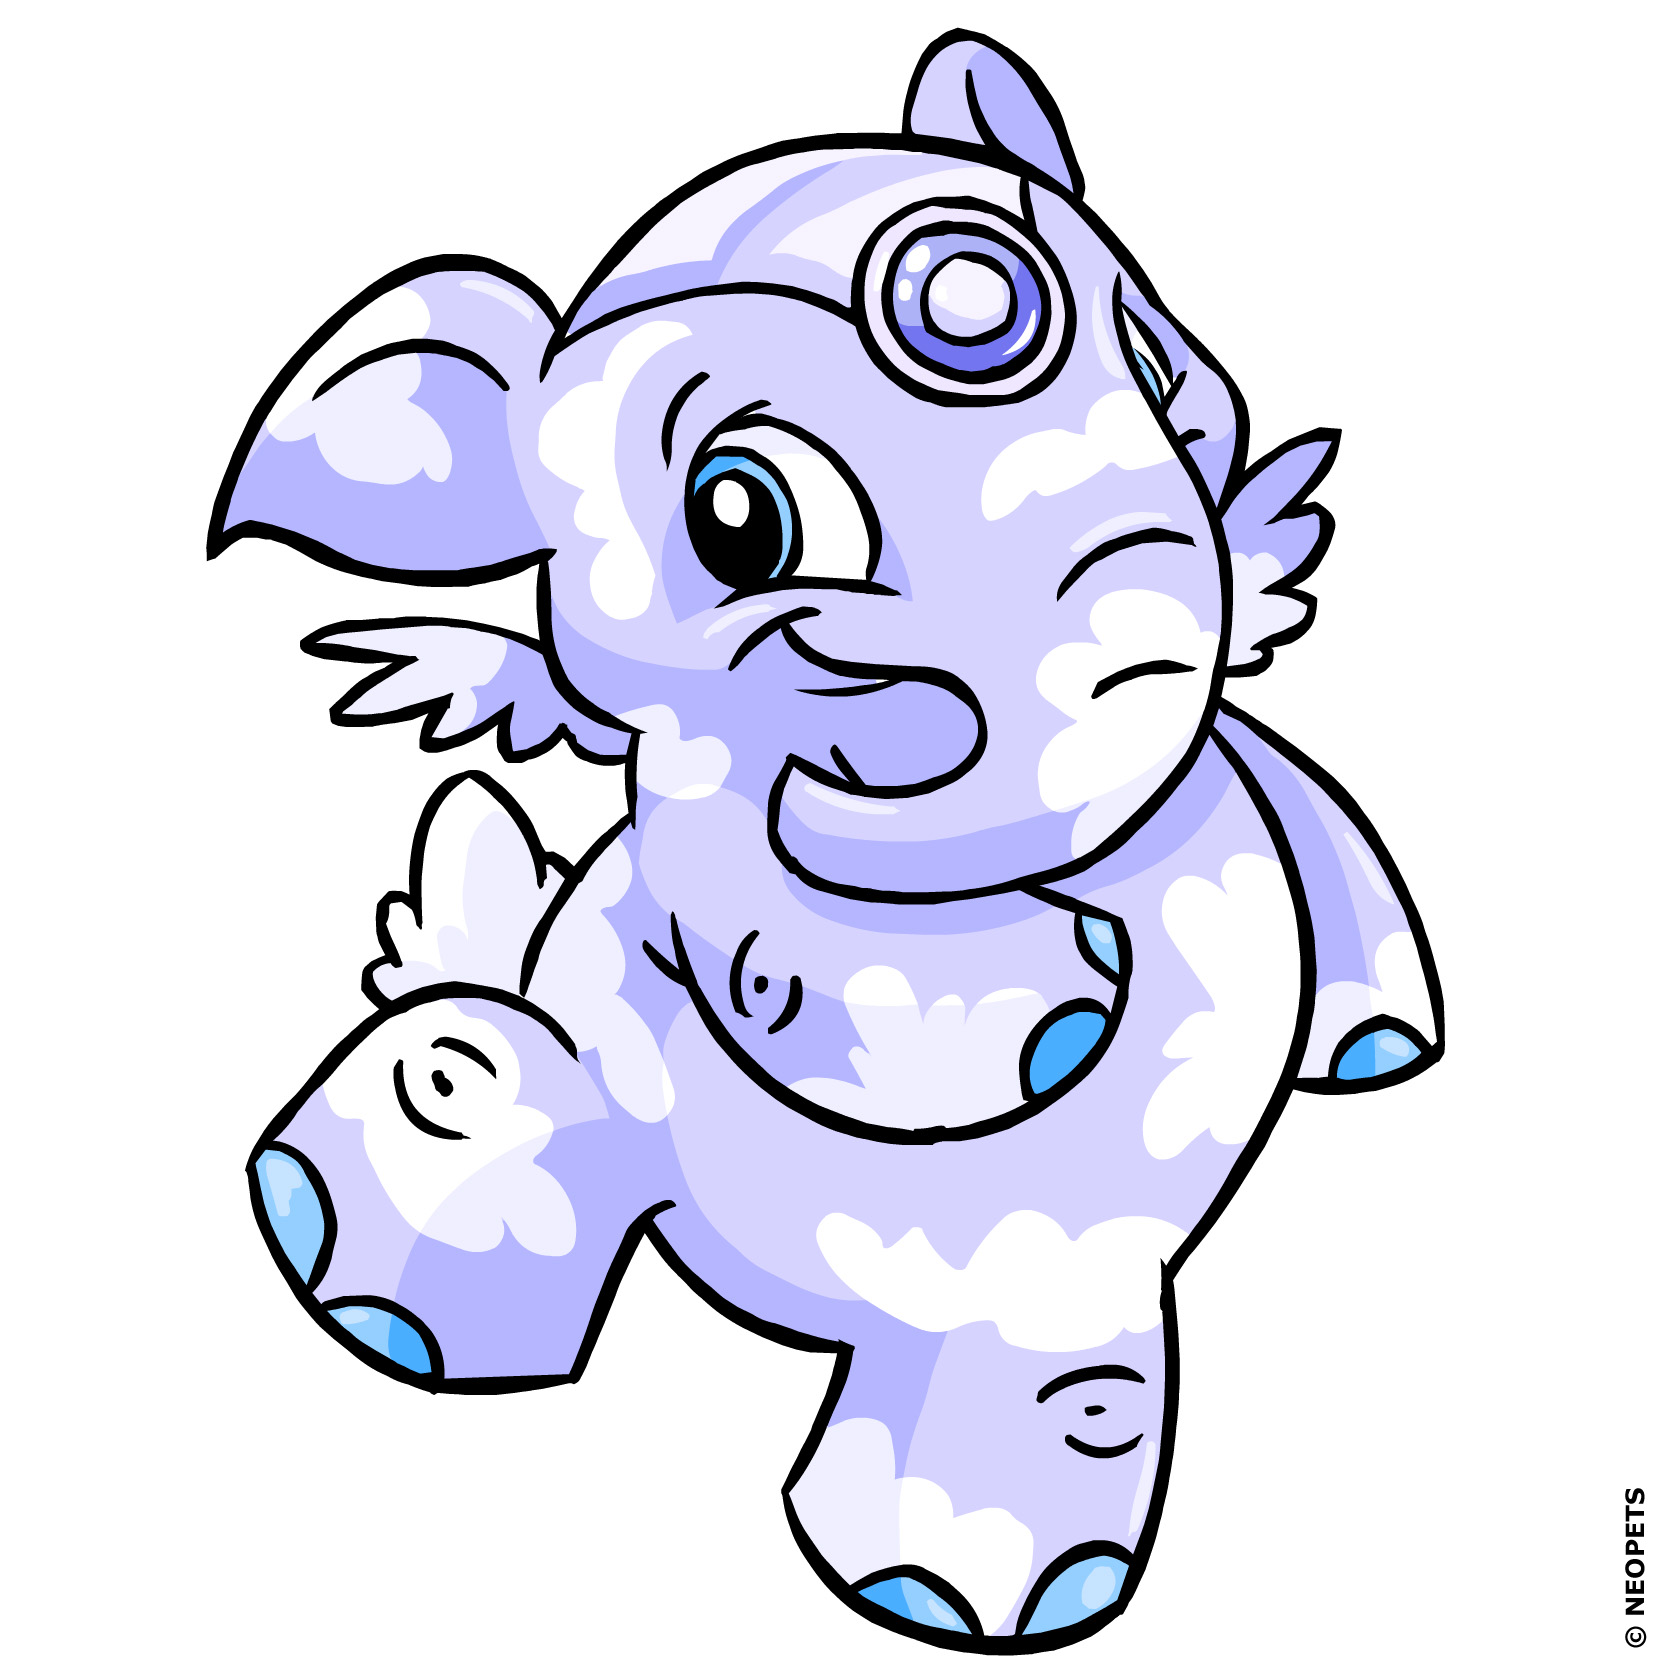 http://images.neopets.com/press/elephante_7.jpg